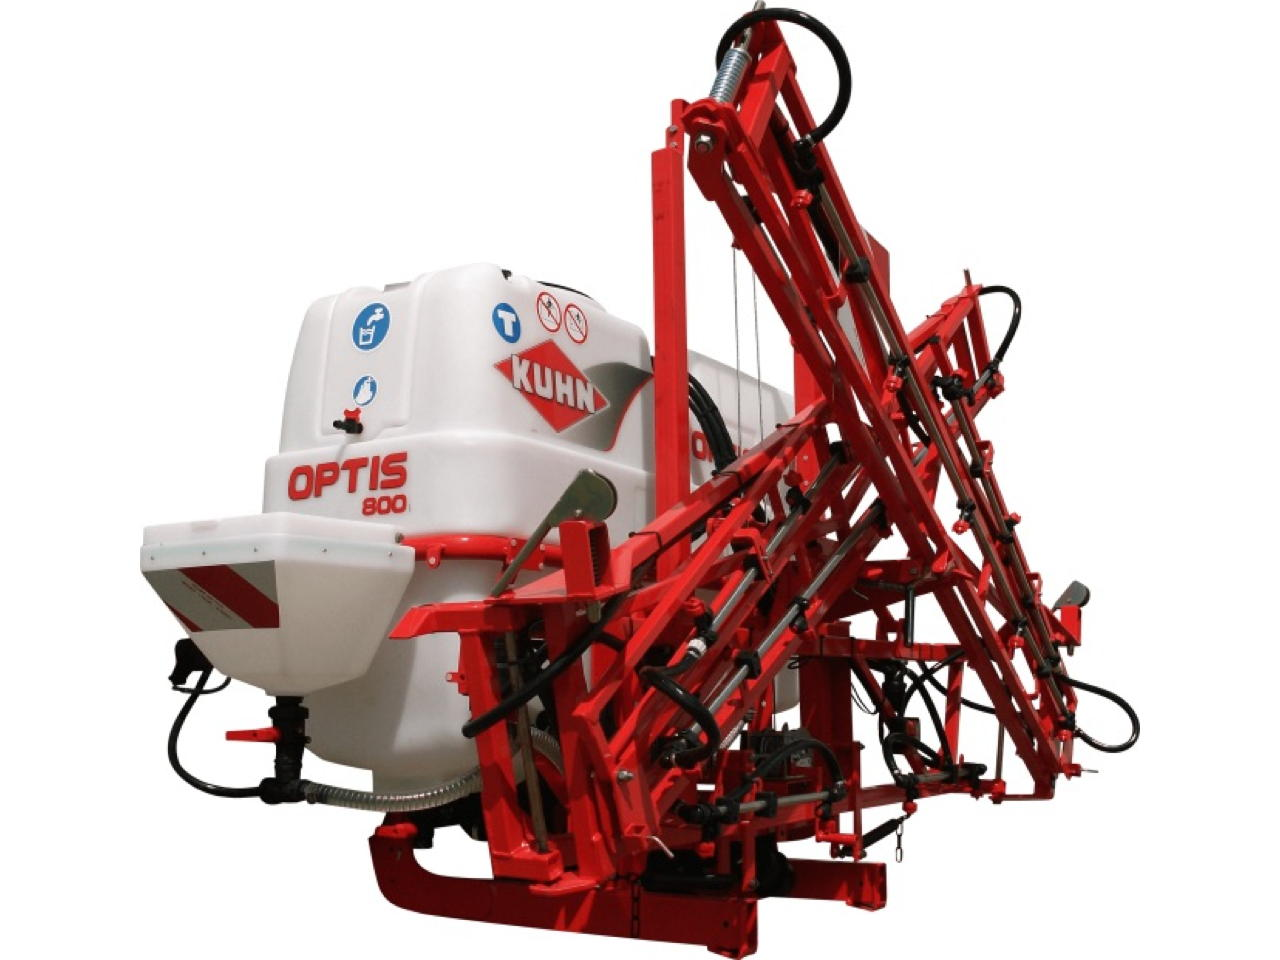 Kuhn Optis Optis 600